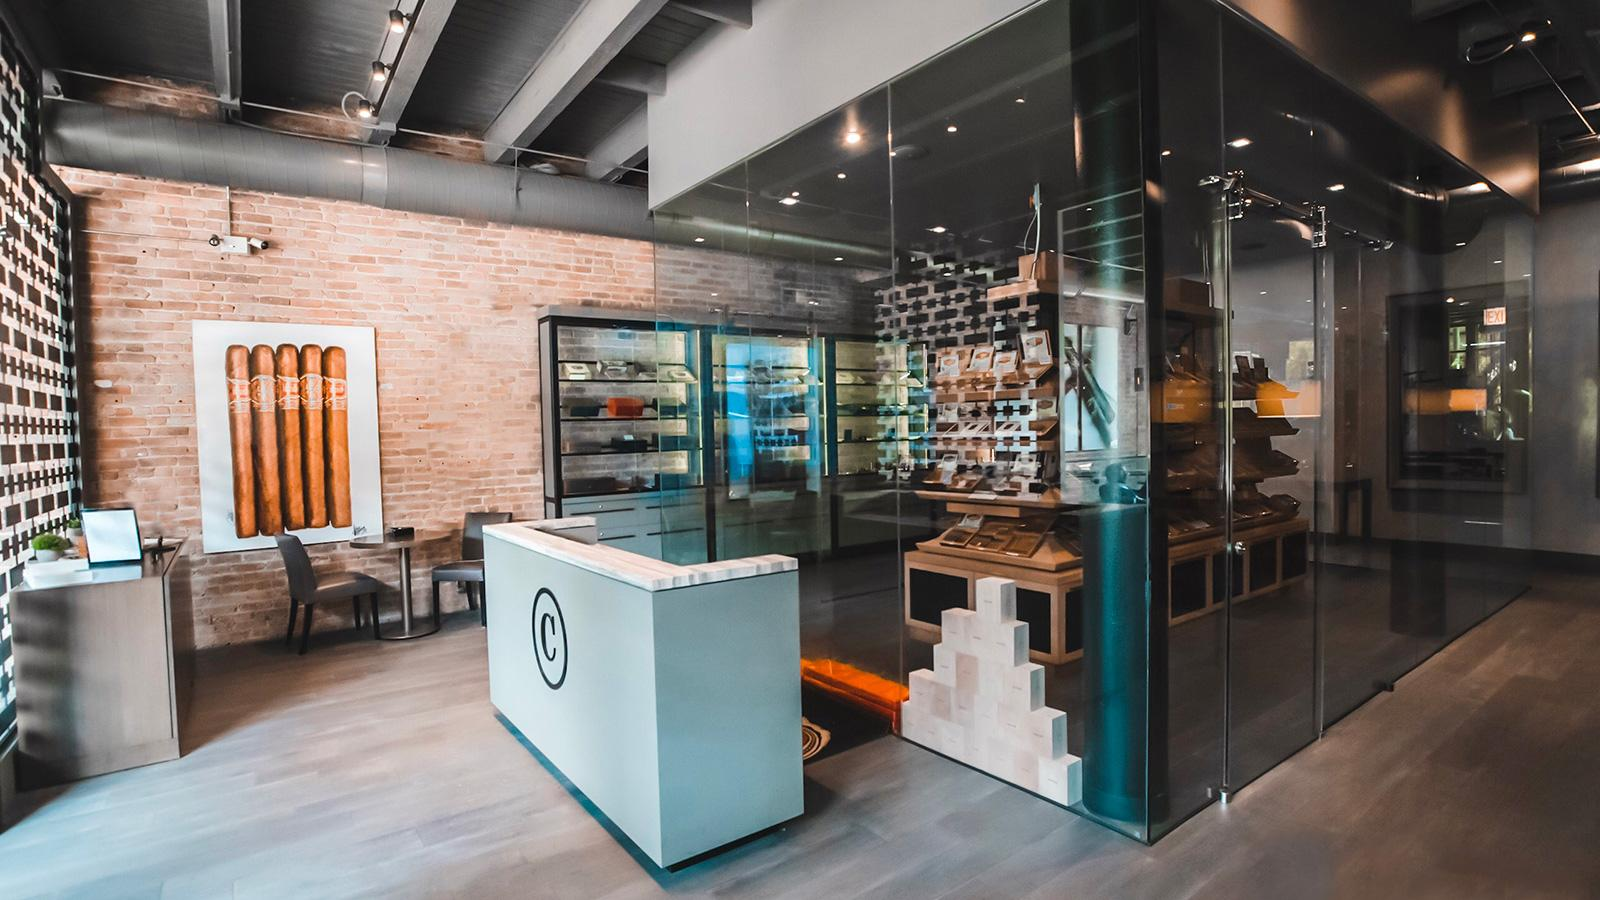 The large, glass-encased humidor occupies the front of the store.